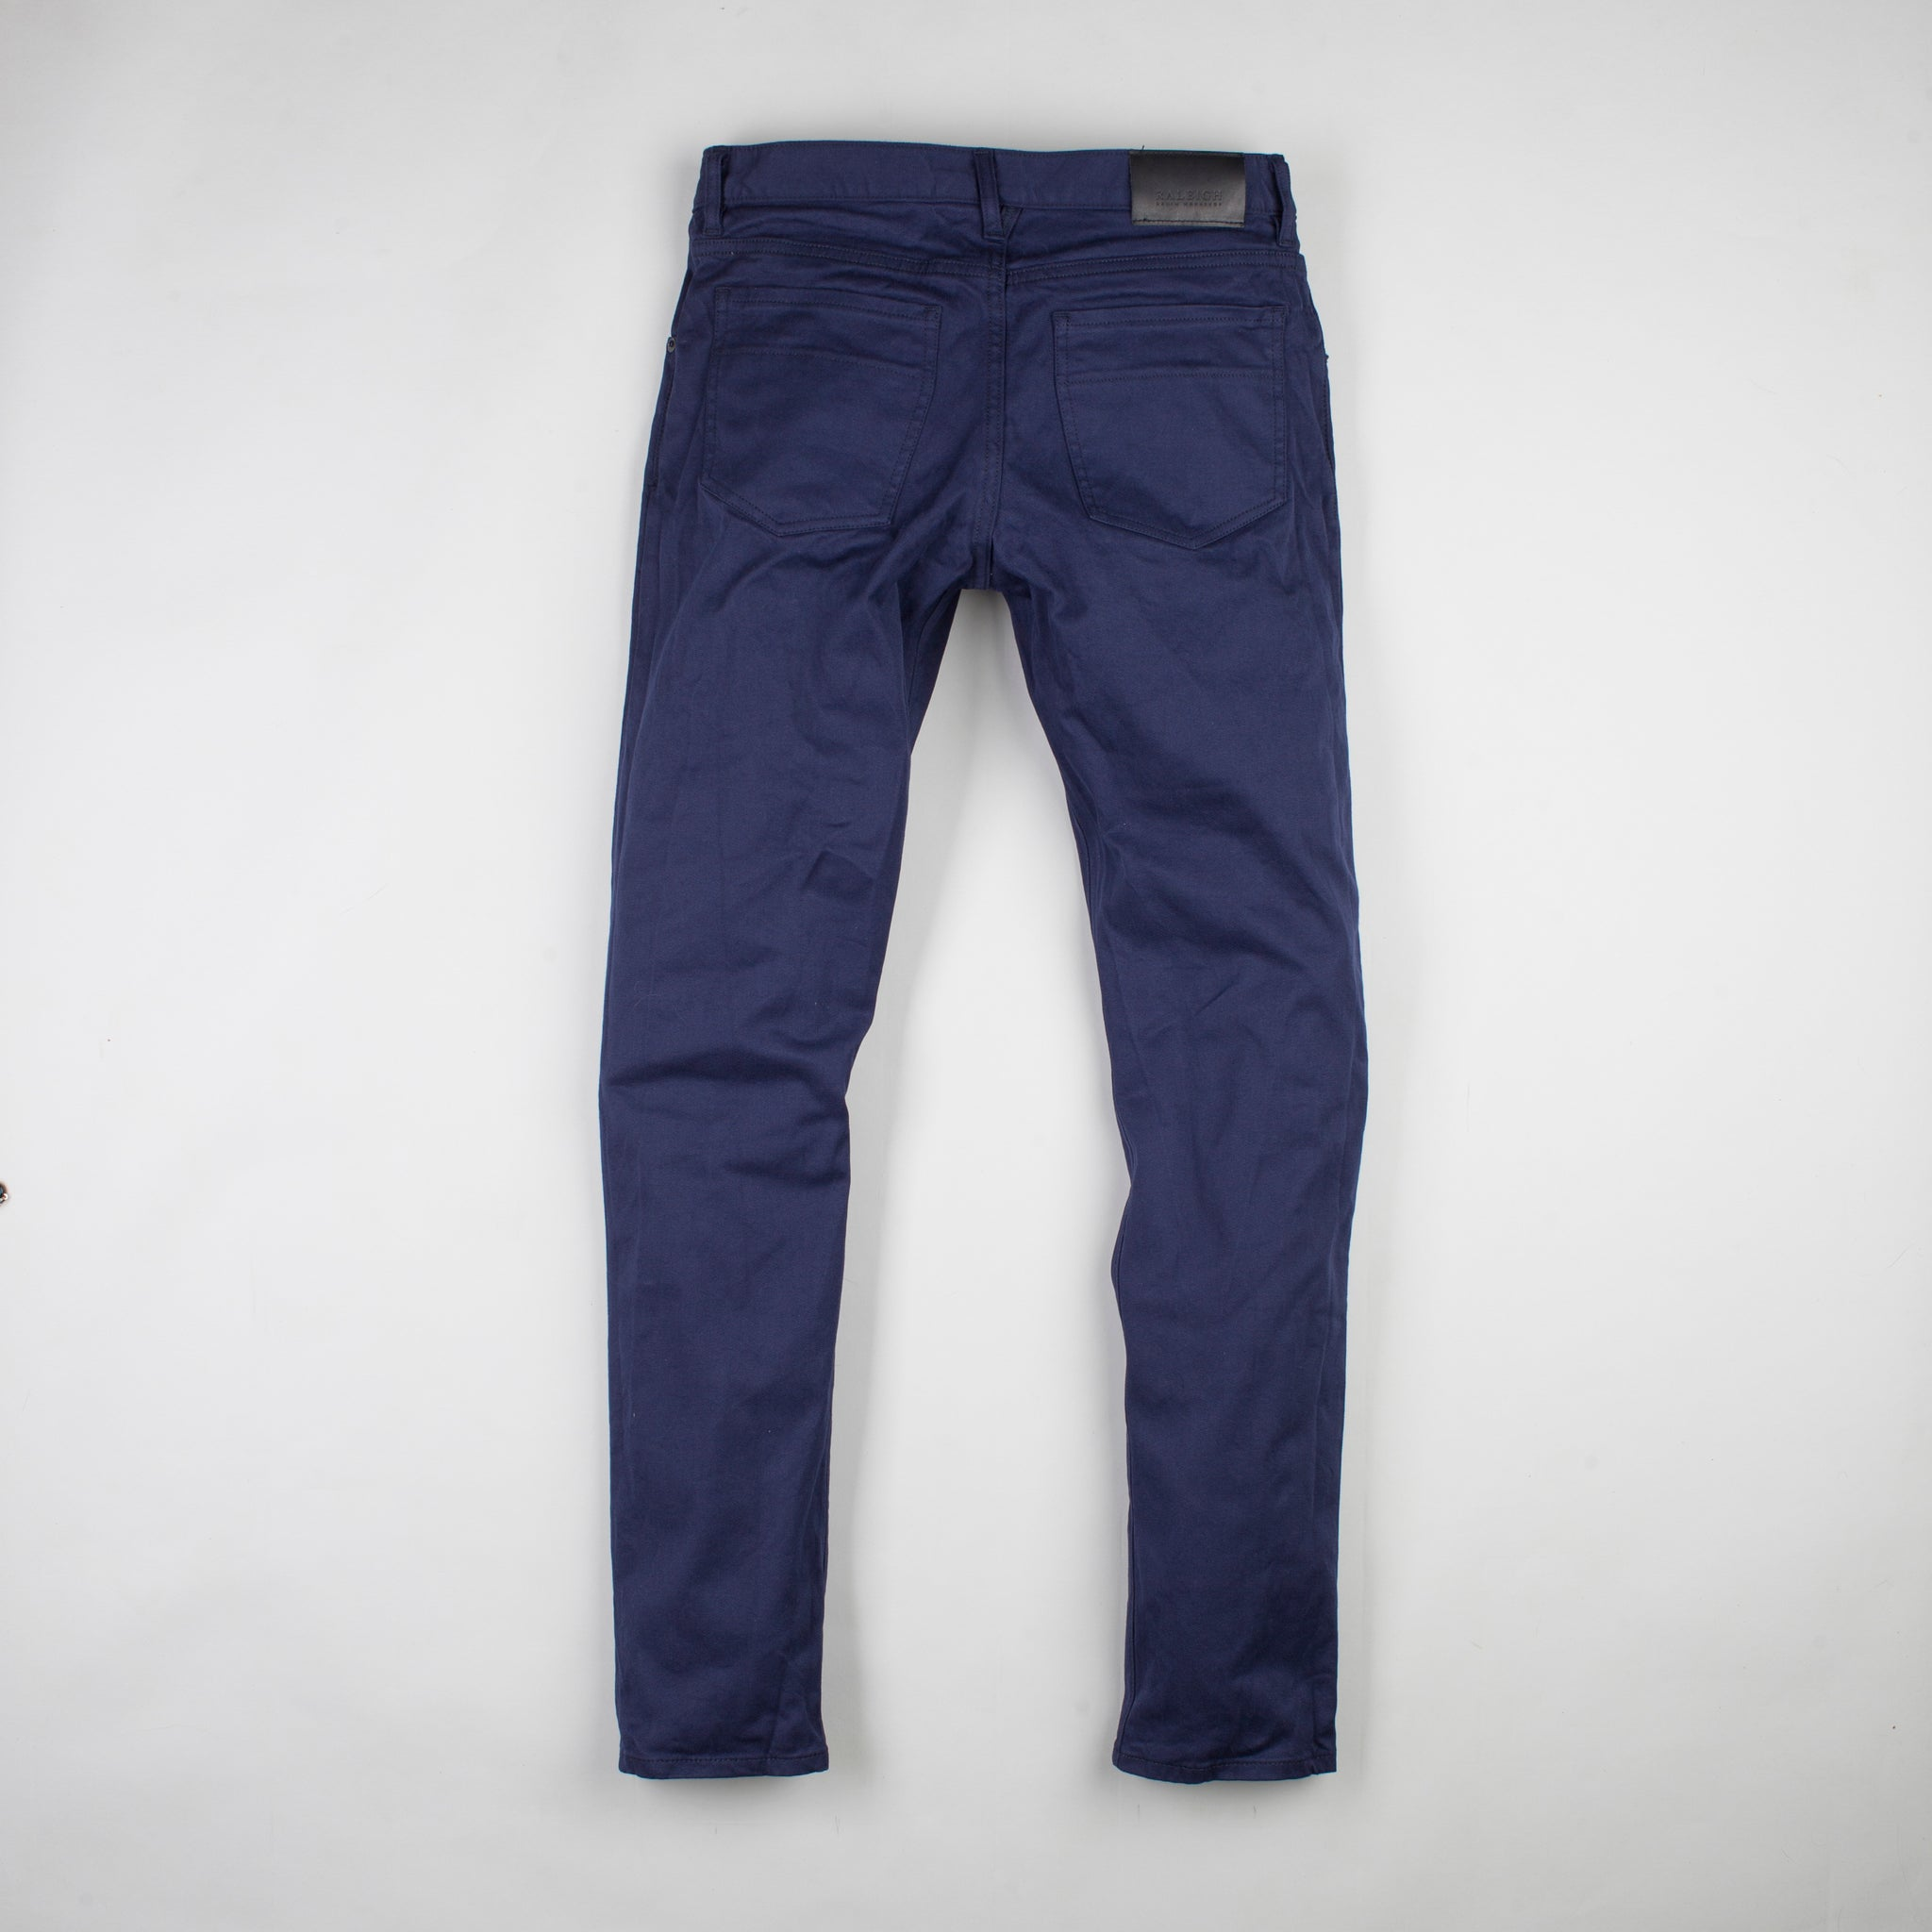 angle: navy polo rinse  Raleigh Denim Workshop Martin thin taper fit men's pants in navy polo rinse.